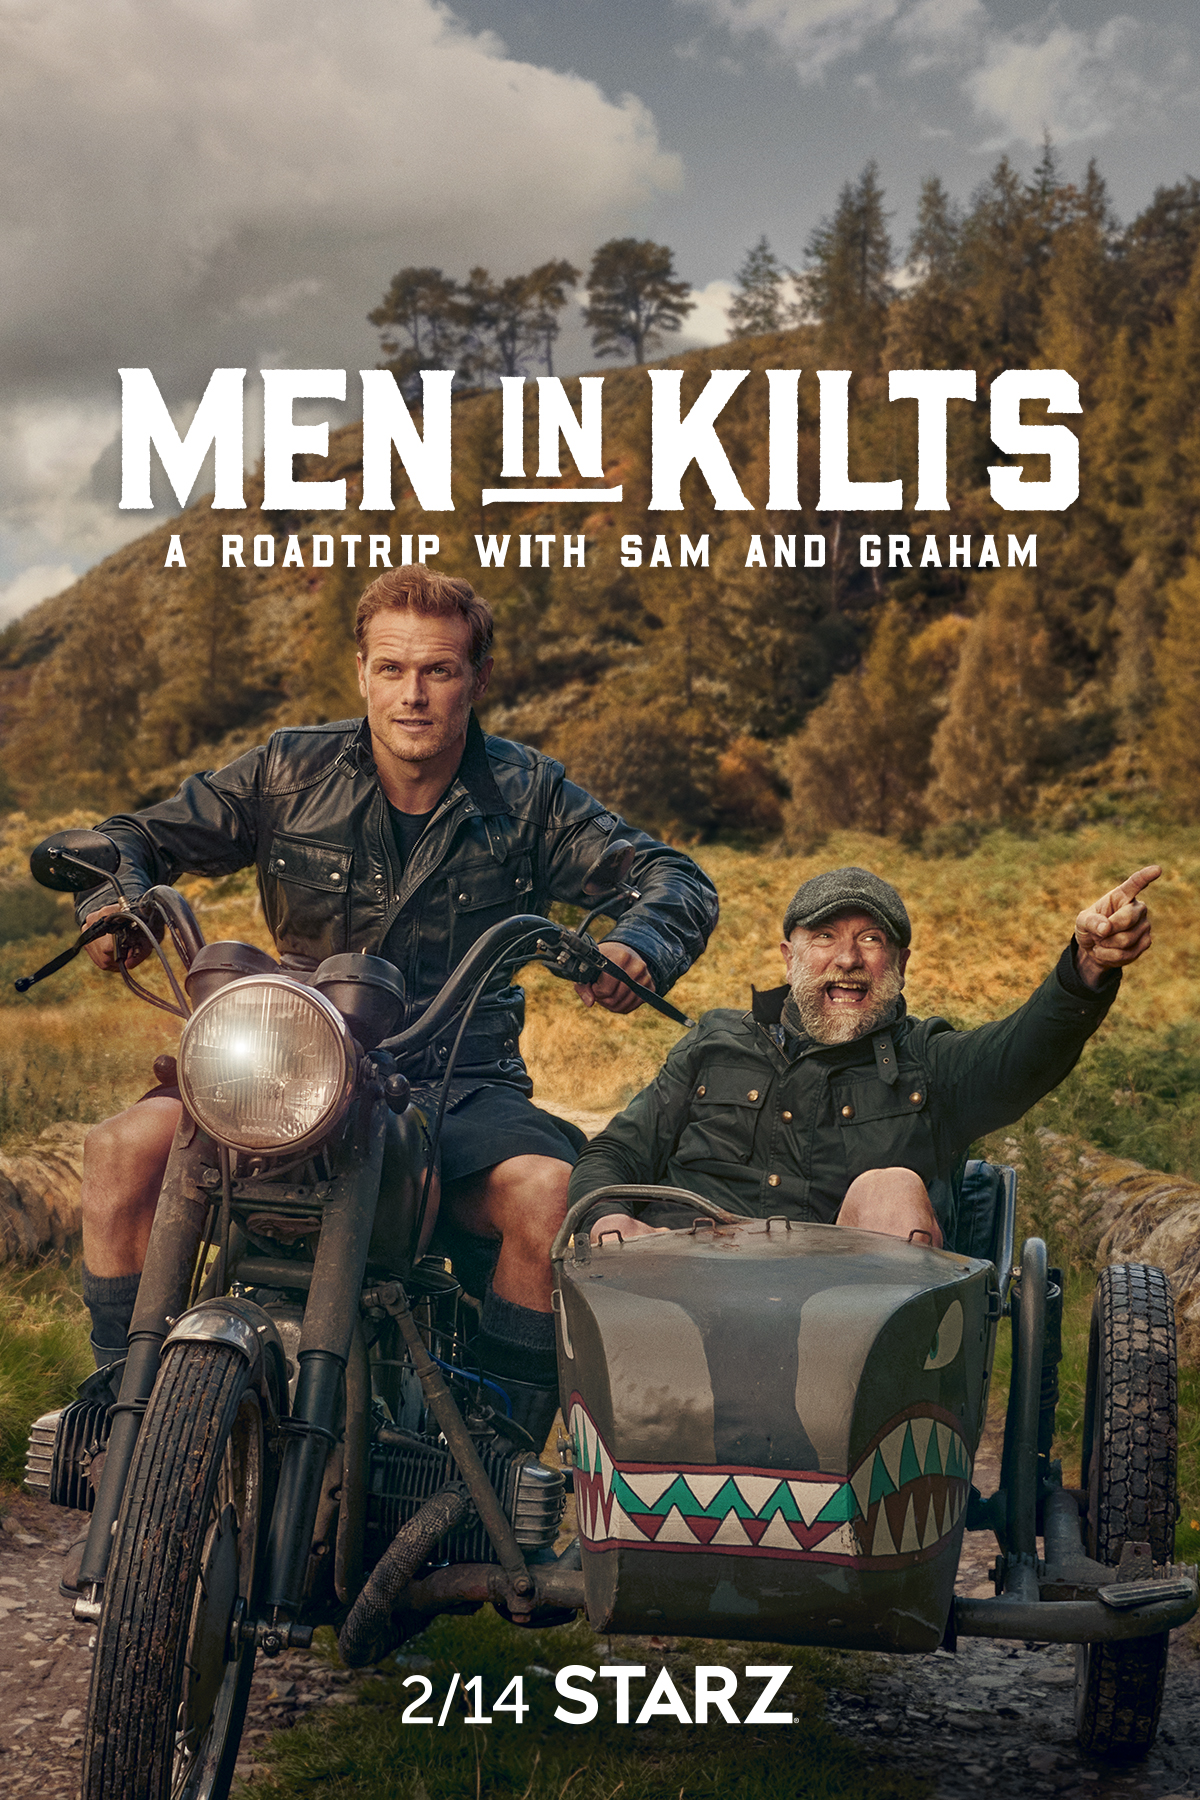 Men in Kilts: A Roadtrip with Sam and Graham - new shows on starz